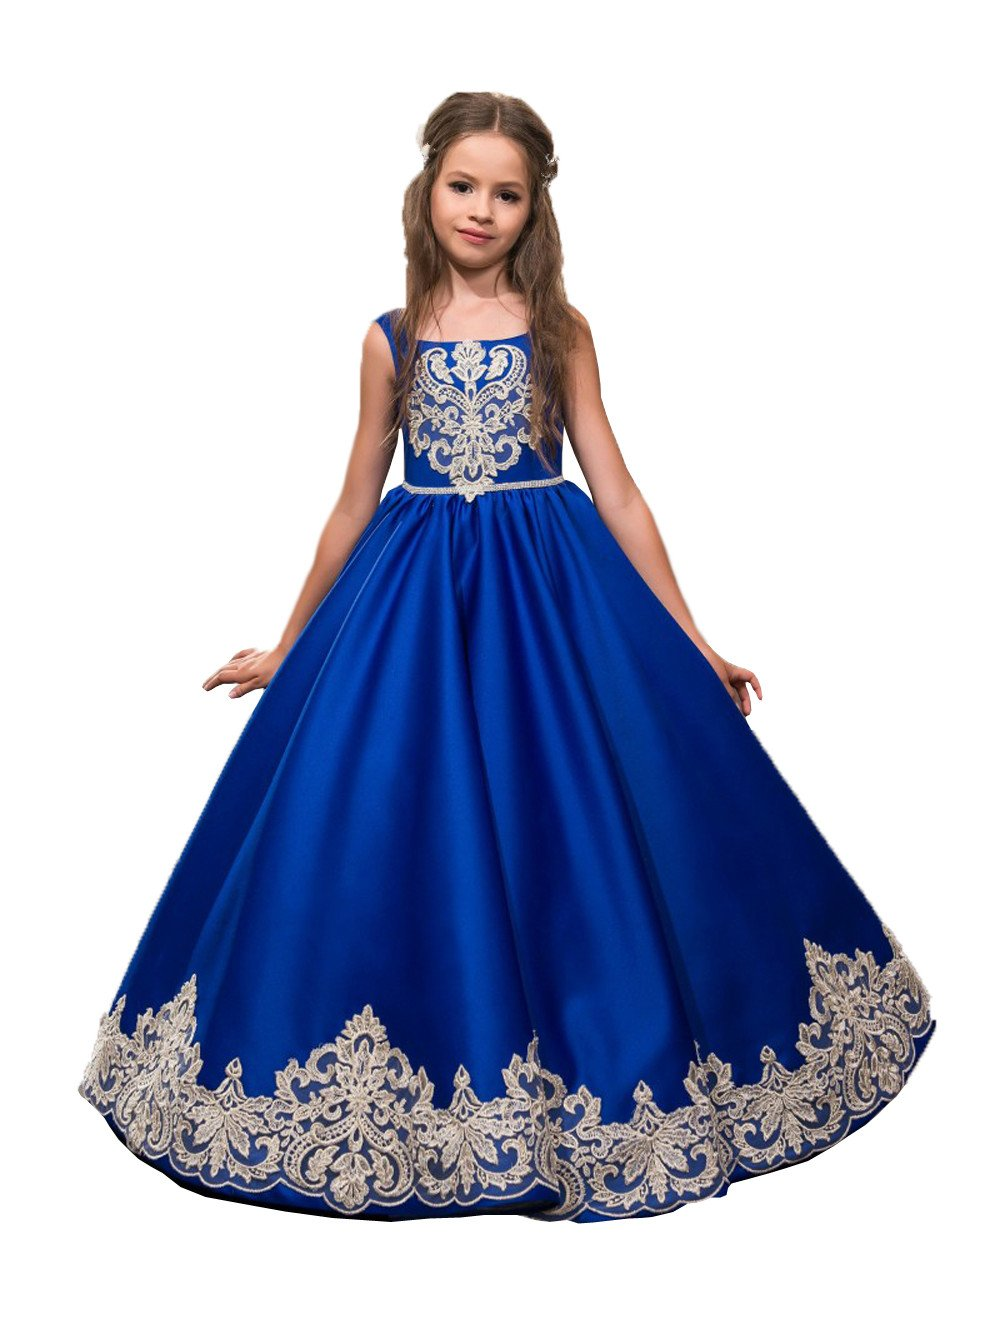 Banfvting Lovely Little Girls Pageant Dress Floor Length Appliqued Flower Girl Dress For Weddings Royal Blue Custom Made (10)